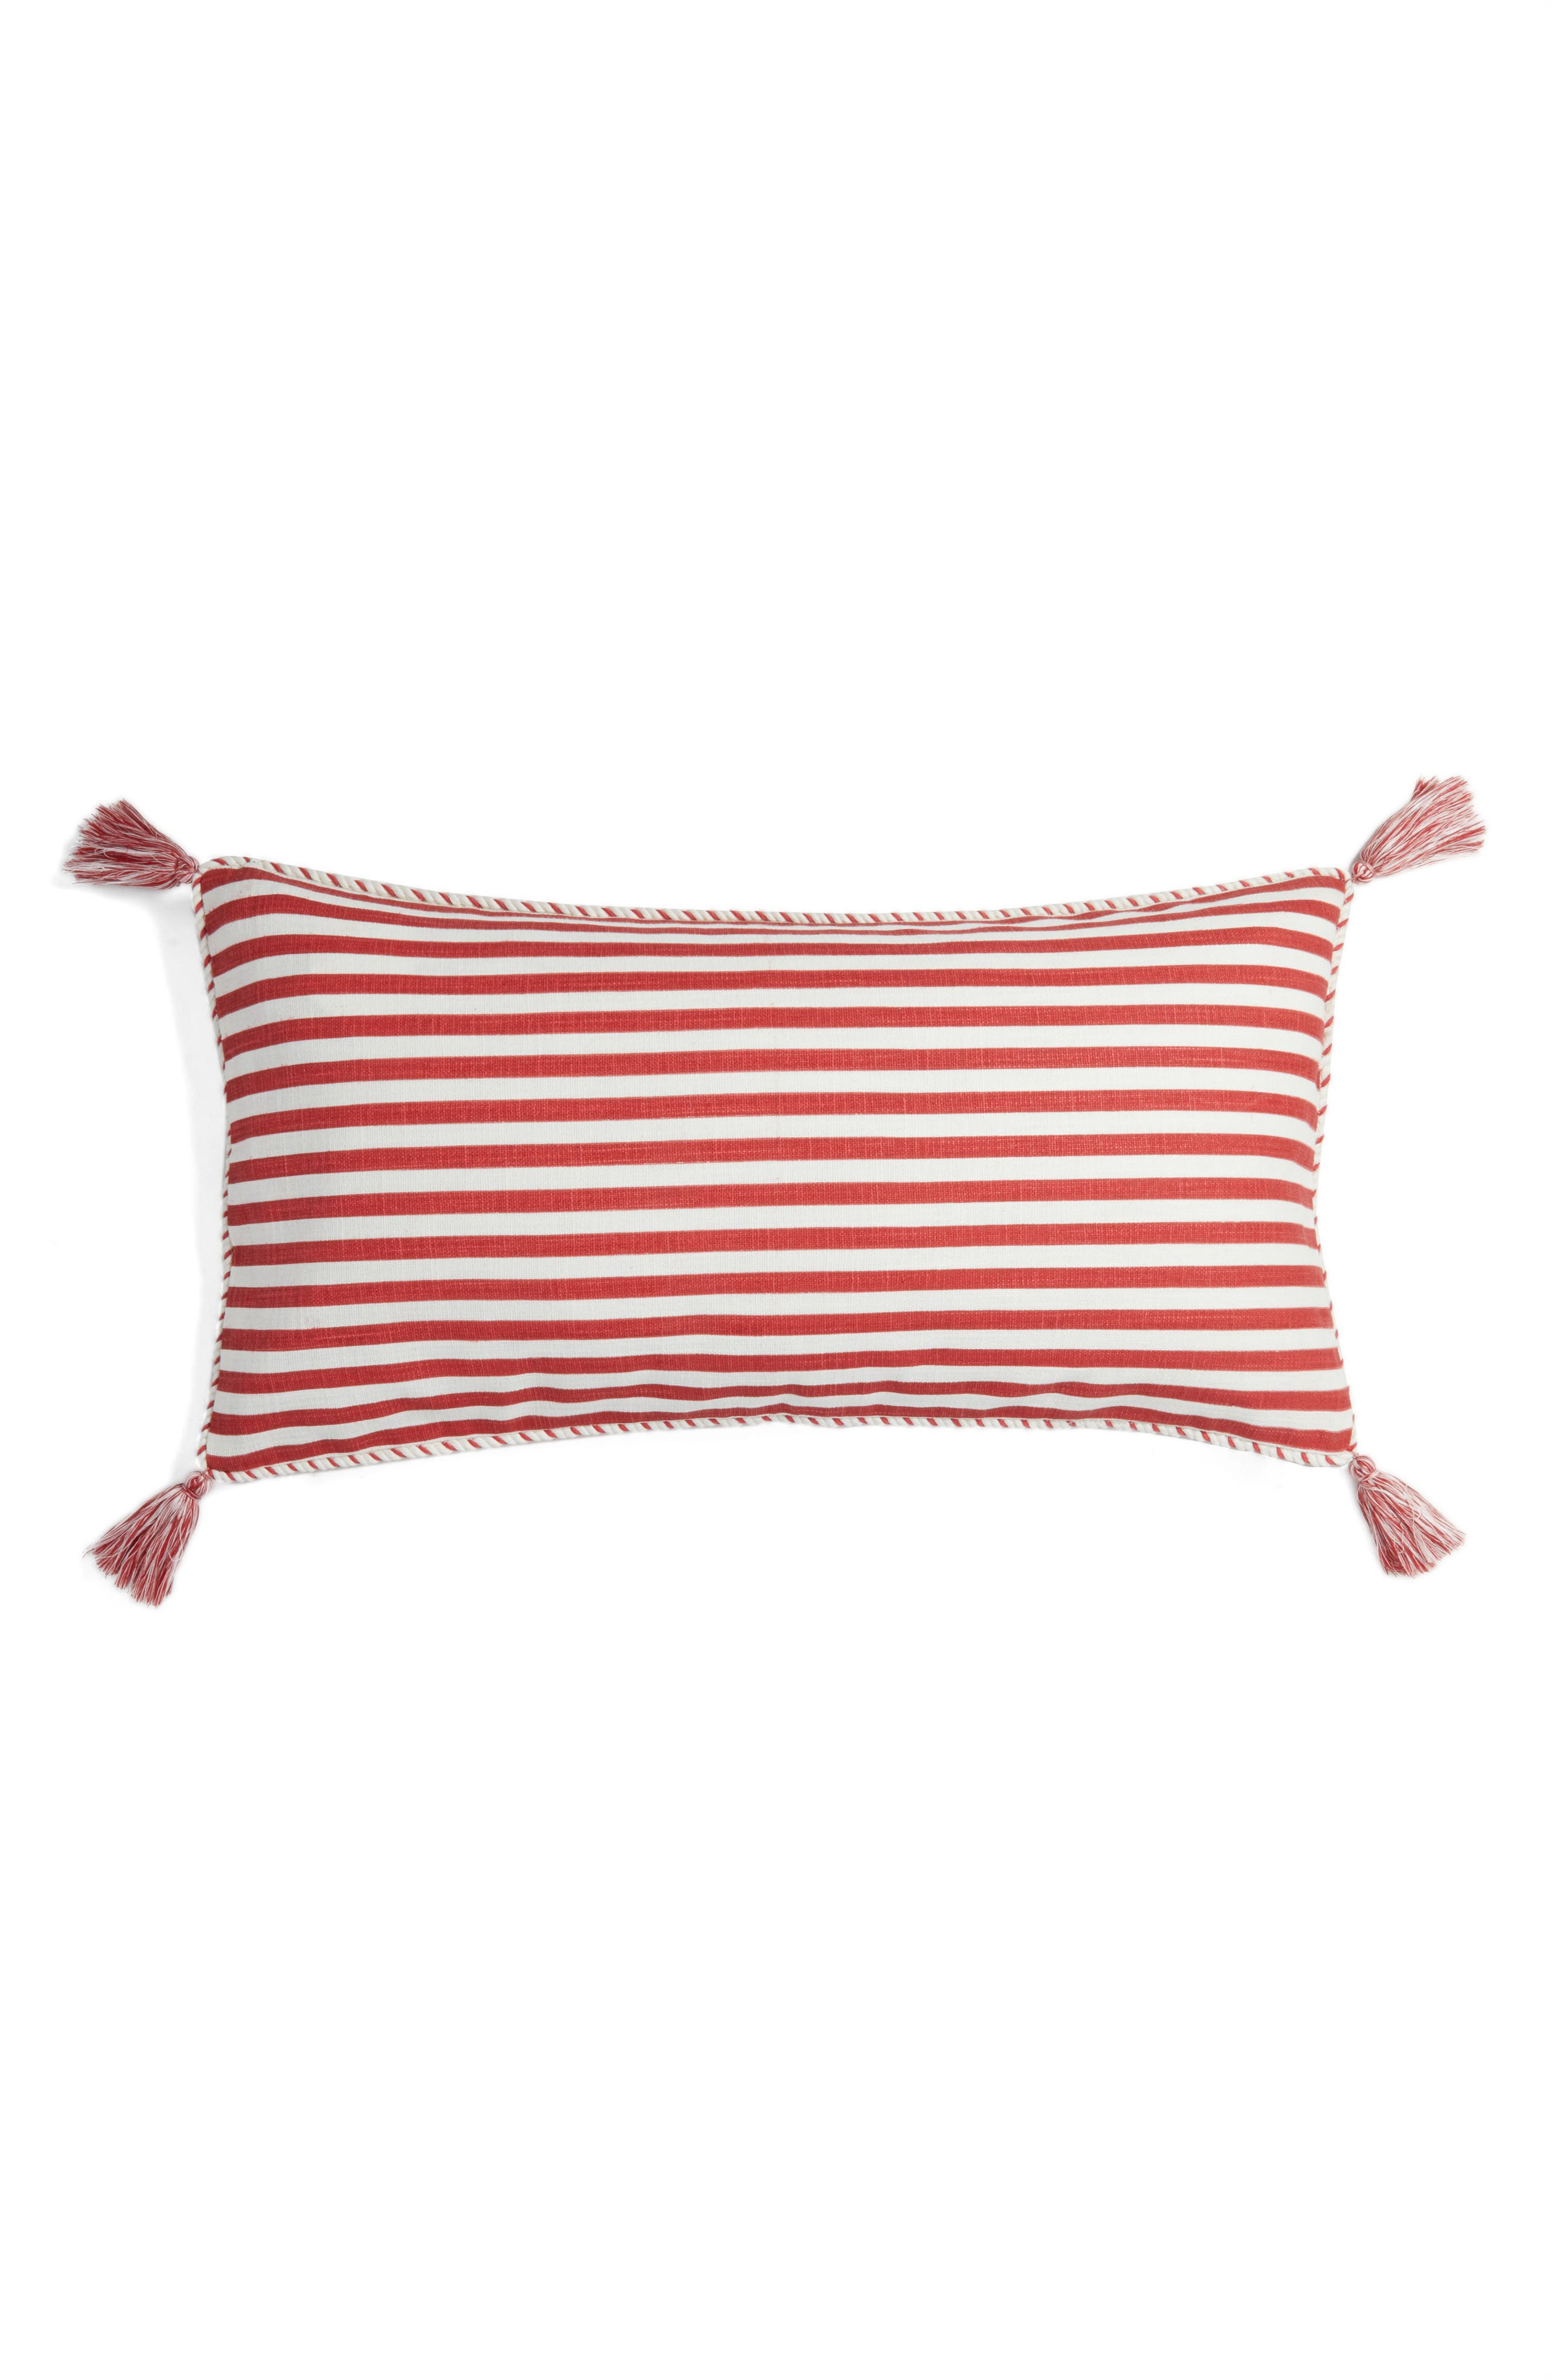 Stripe Tassel Accent Pillow,                             Alternate thumbnail 2, color,                             950